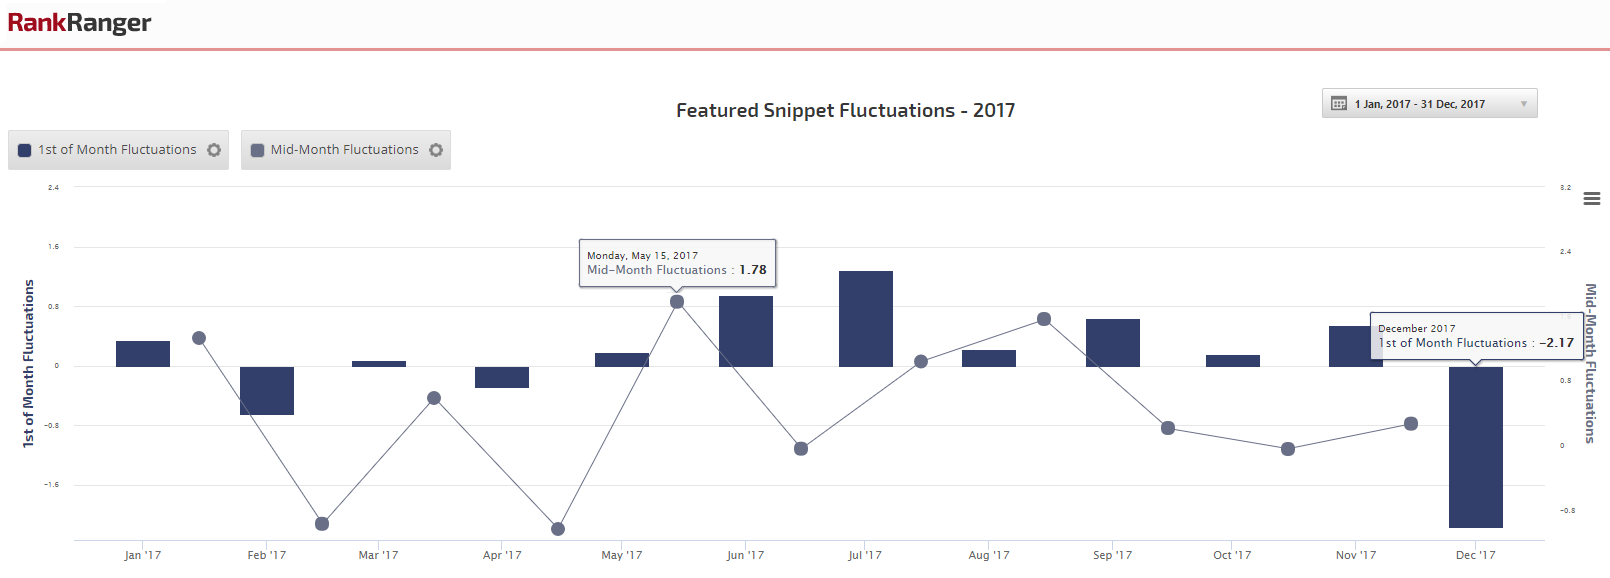 2017 Featured Snippet Fluctuations